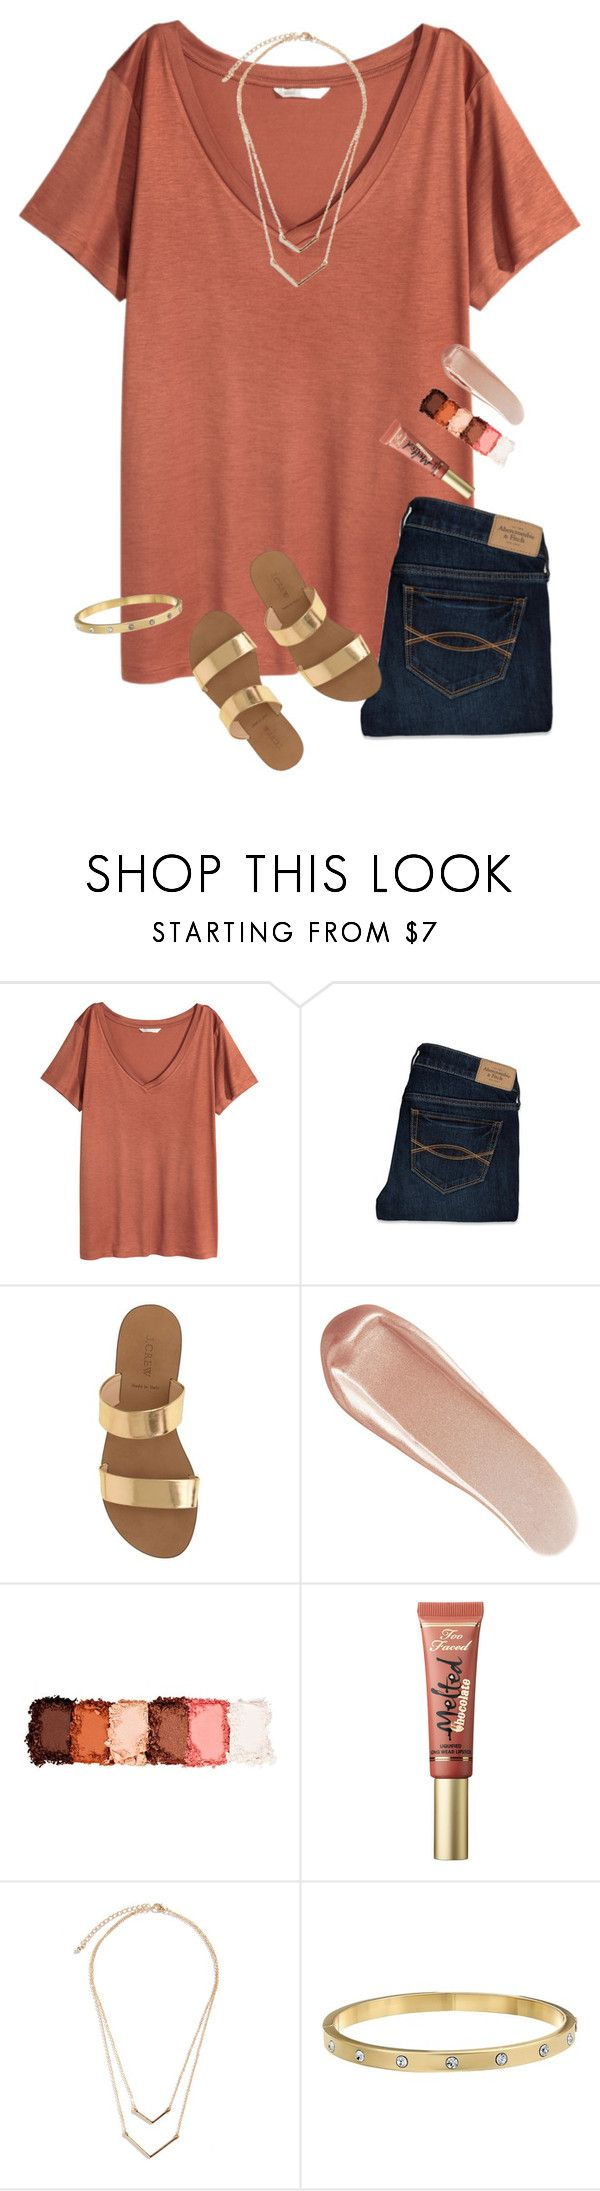 """""""comment a question you have for me and I'll answer!"""" by preppinessandpearls ❤ liked on Polyvore featuring H&M, Abercrombie & Fitch, J.Crew, NARS Cosmetics, NYX, Too Faced Cosmetics and Kate Spade"""